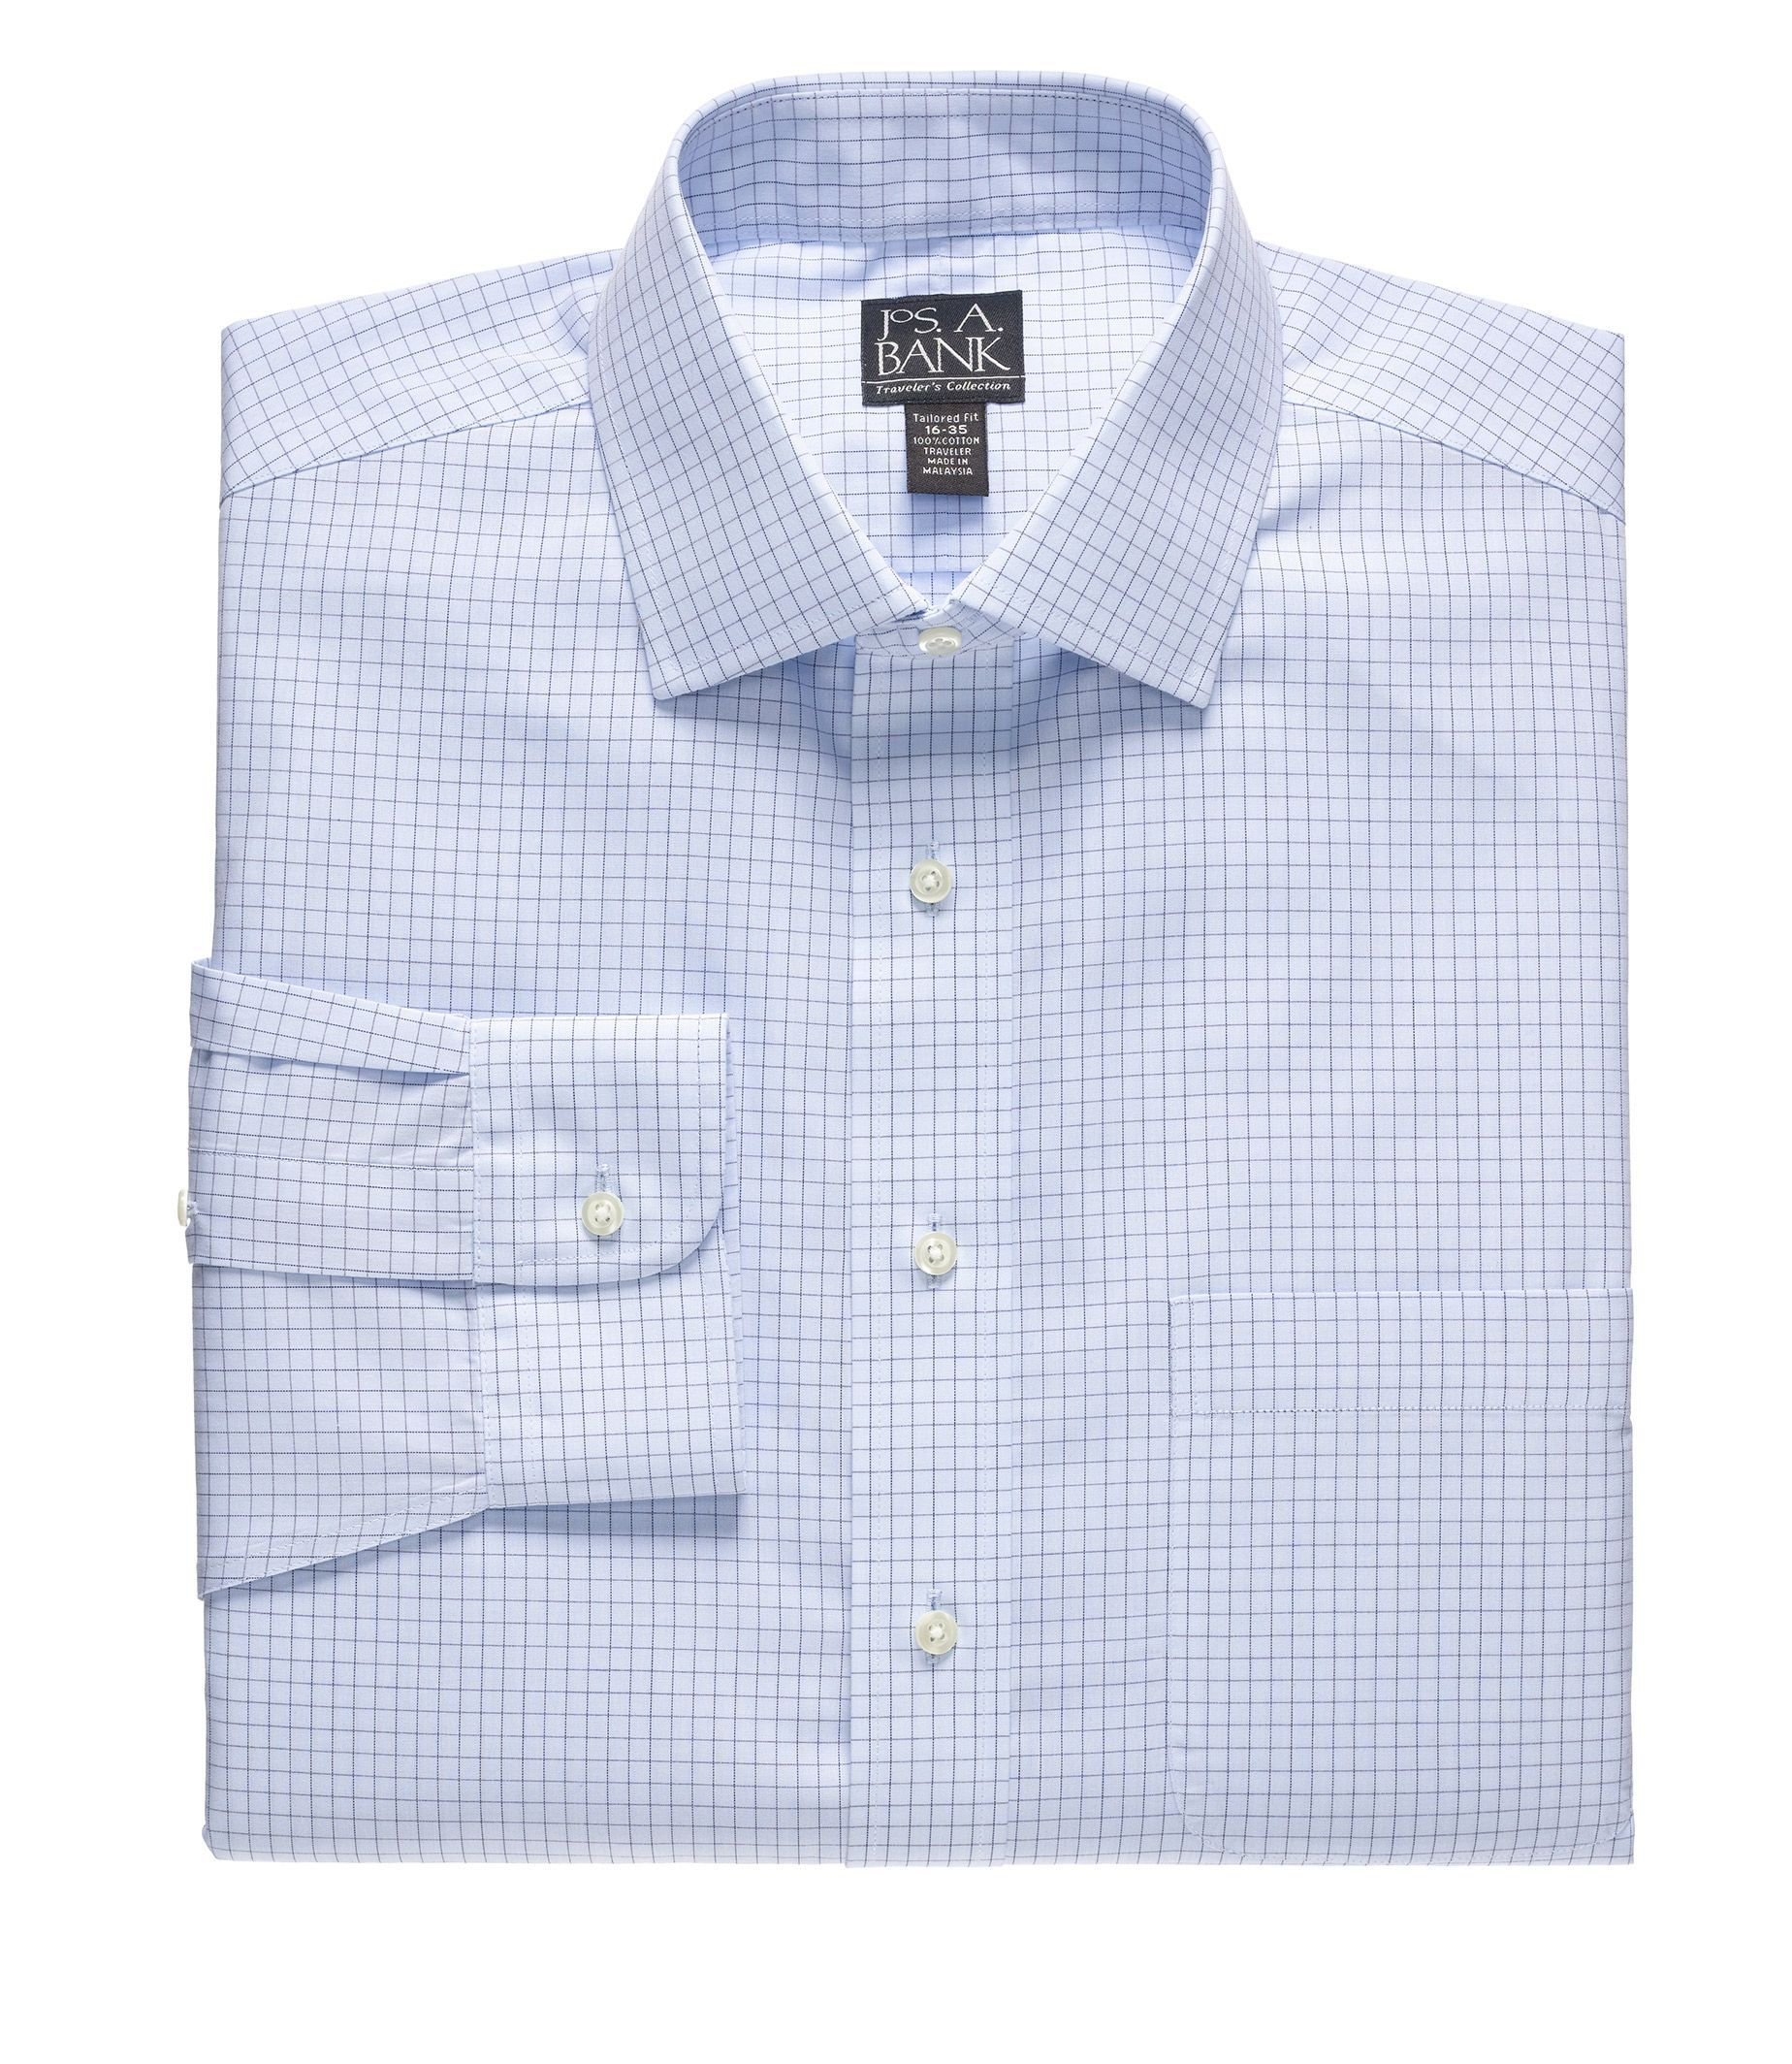 Traveler Tailored Fit Patterned Spread Collar Dress Shirt